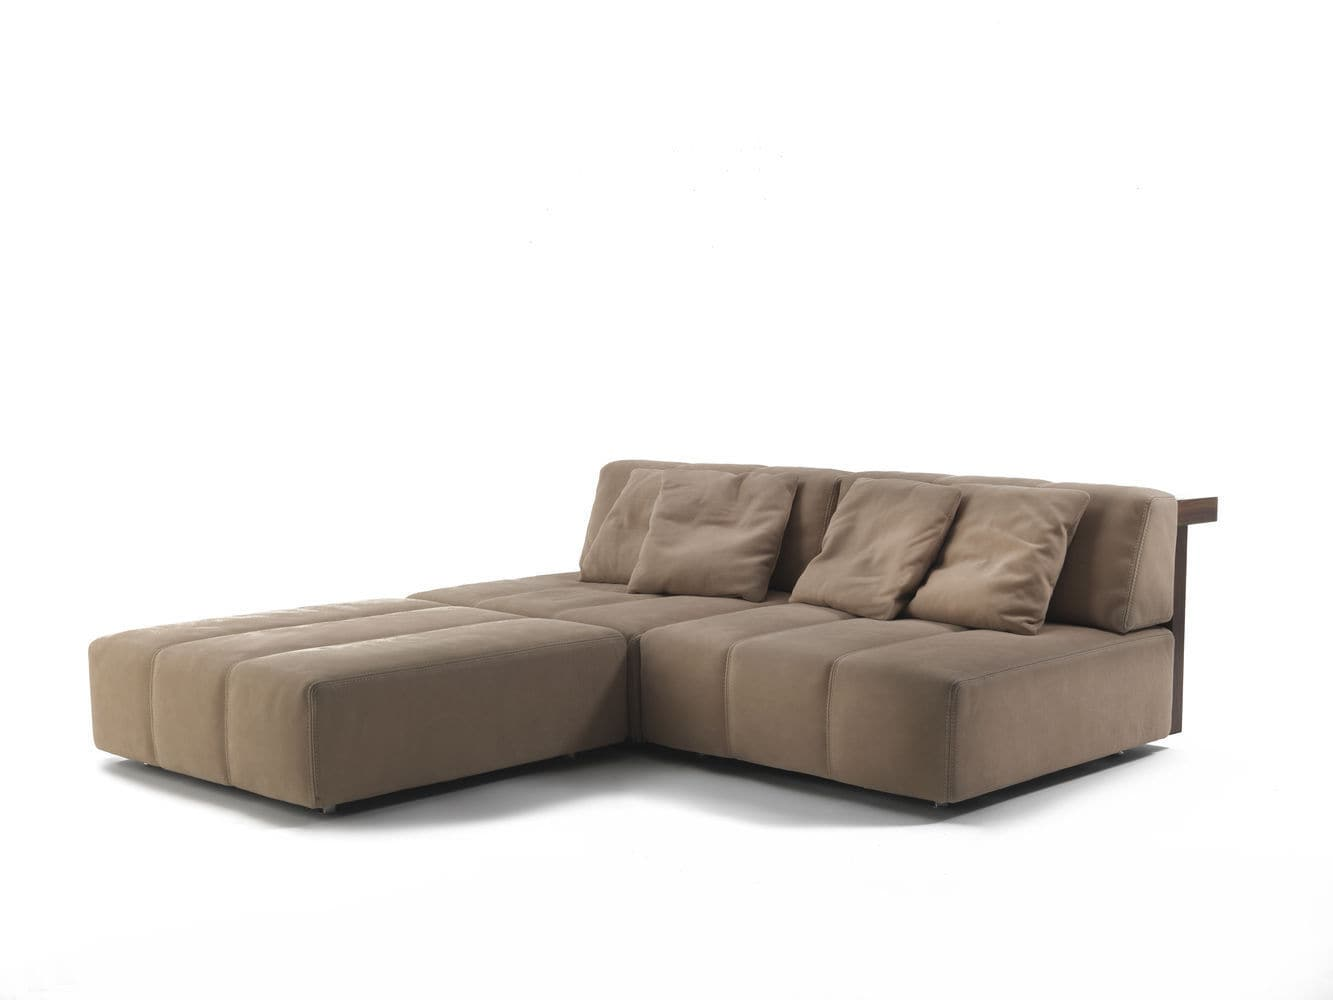 Modular Sofa / Contemporary / Leather / 3 Seater FUR NATURE By Jamie Durie  Riva ...